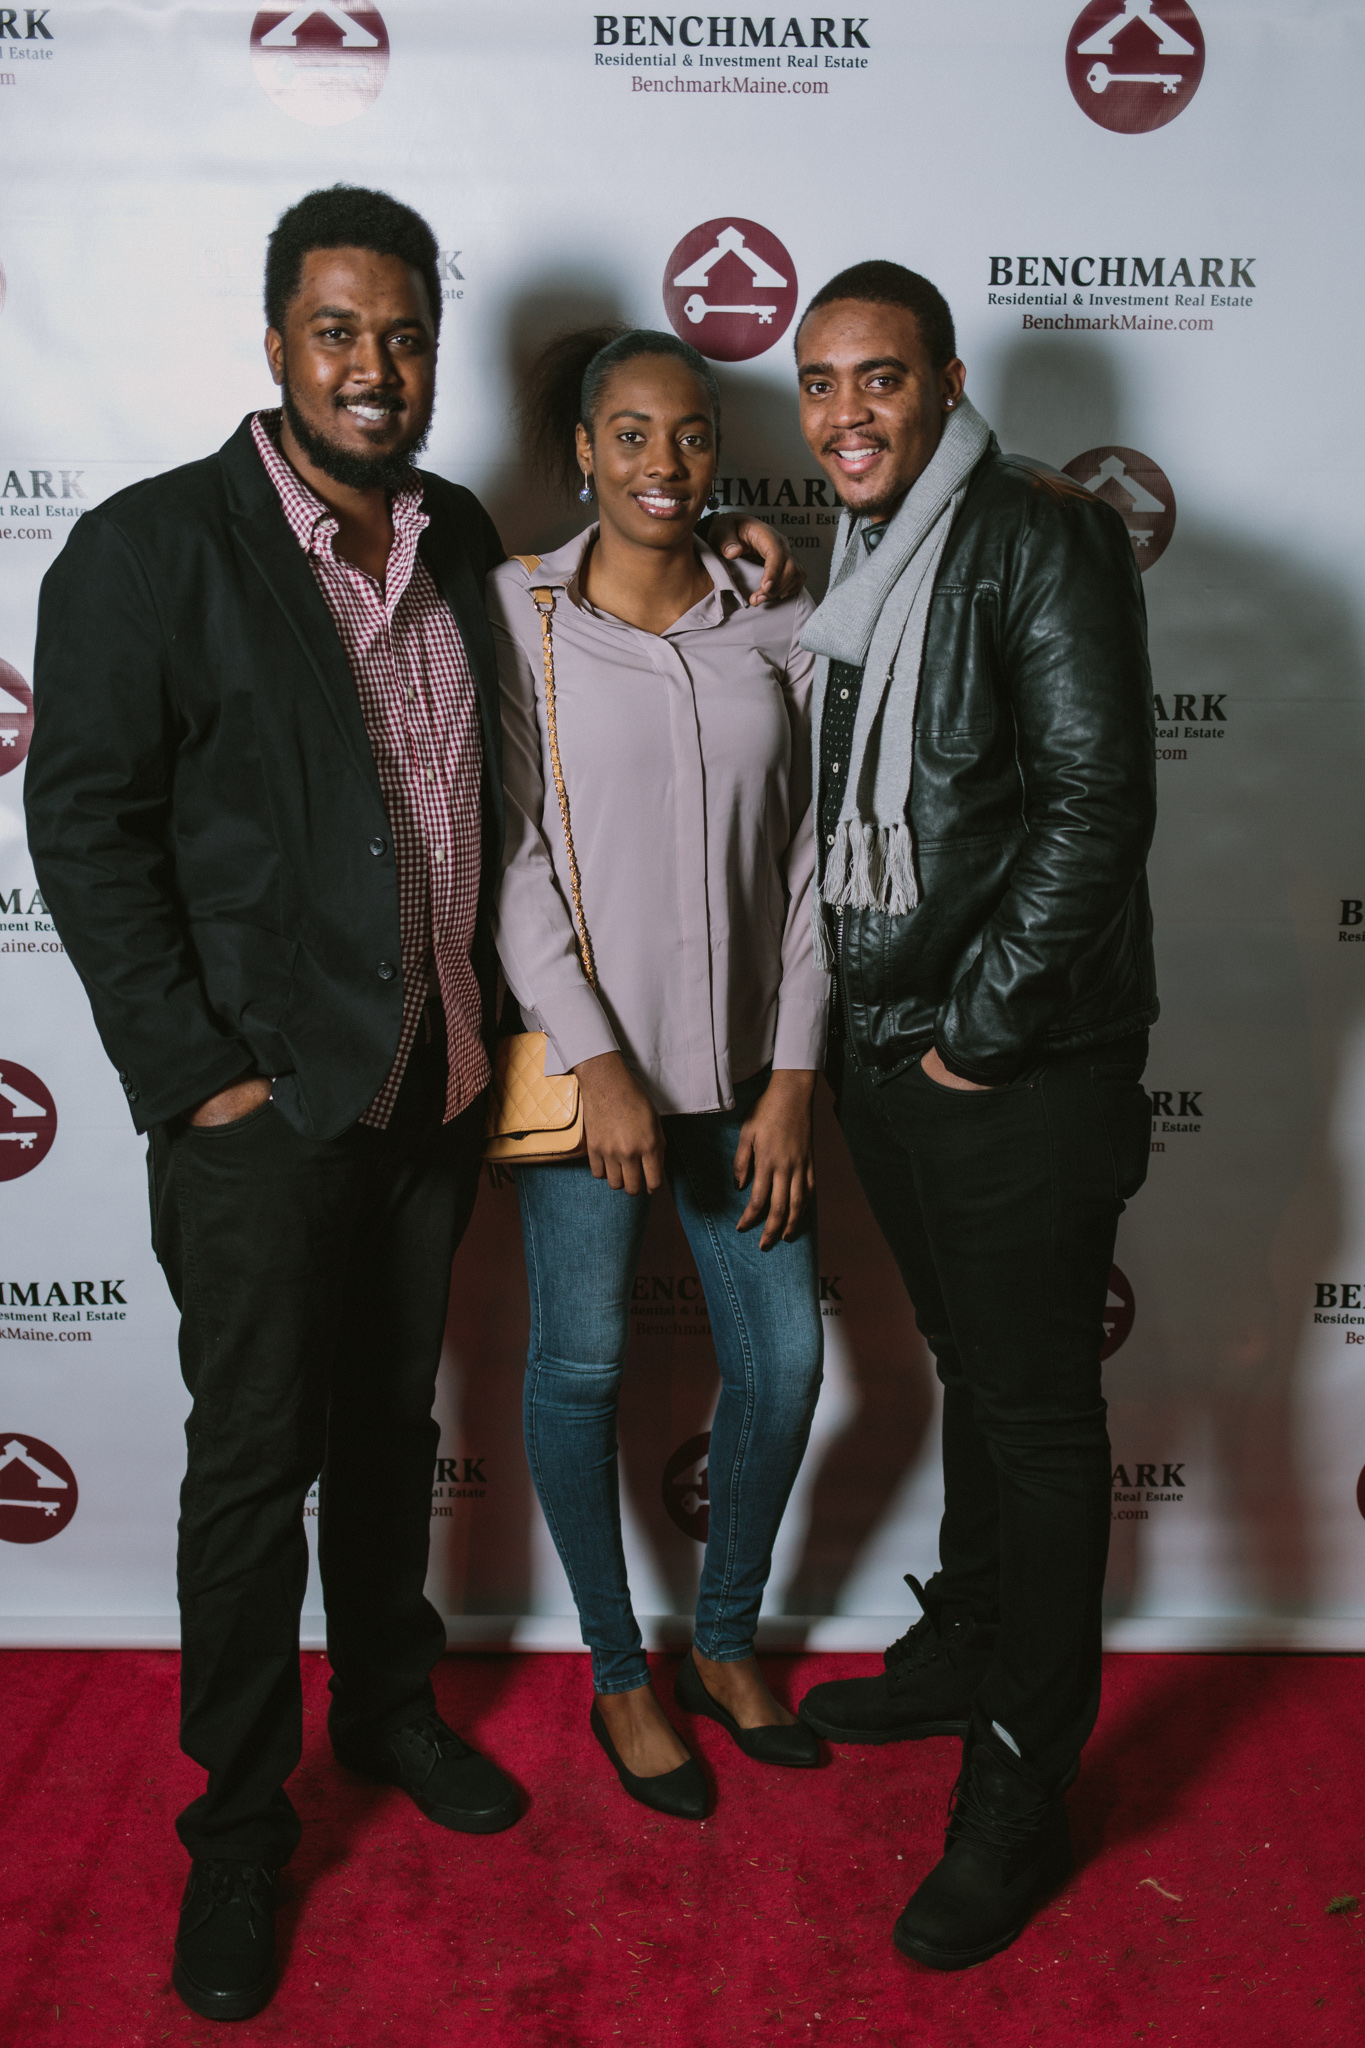 Benchmark_Holiday_Party_SR-074.jpg